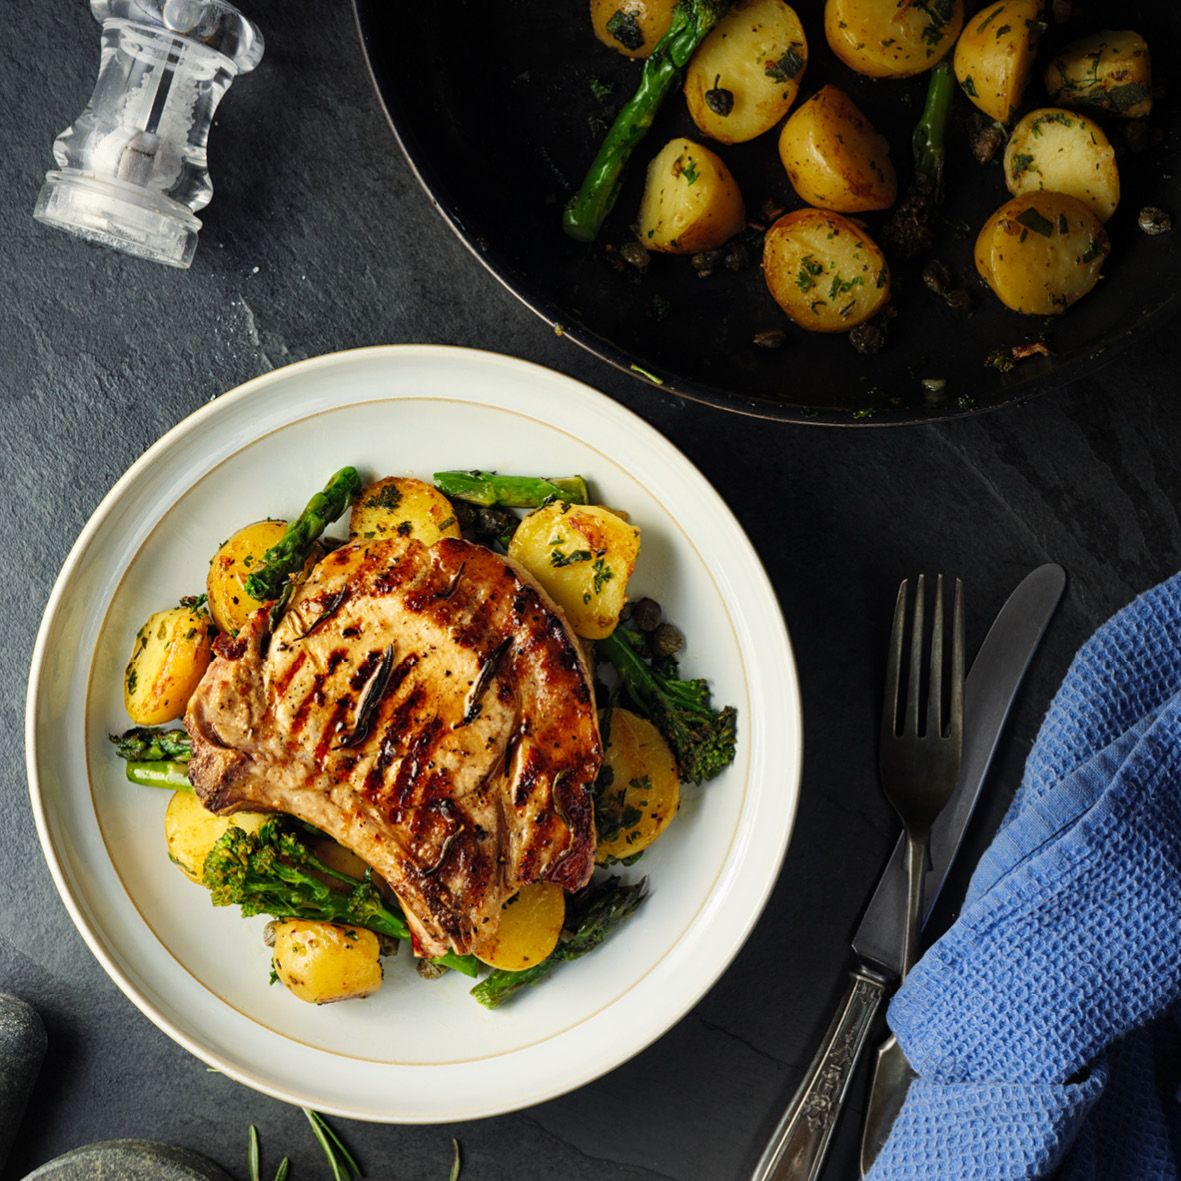 Char-grilled pork chops with garlic sautéed potatoes.jpg